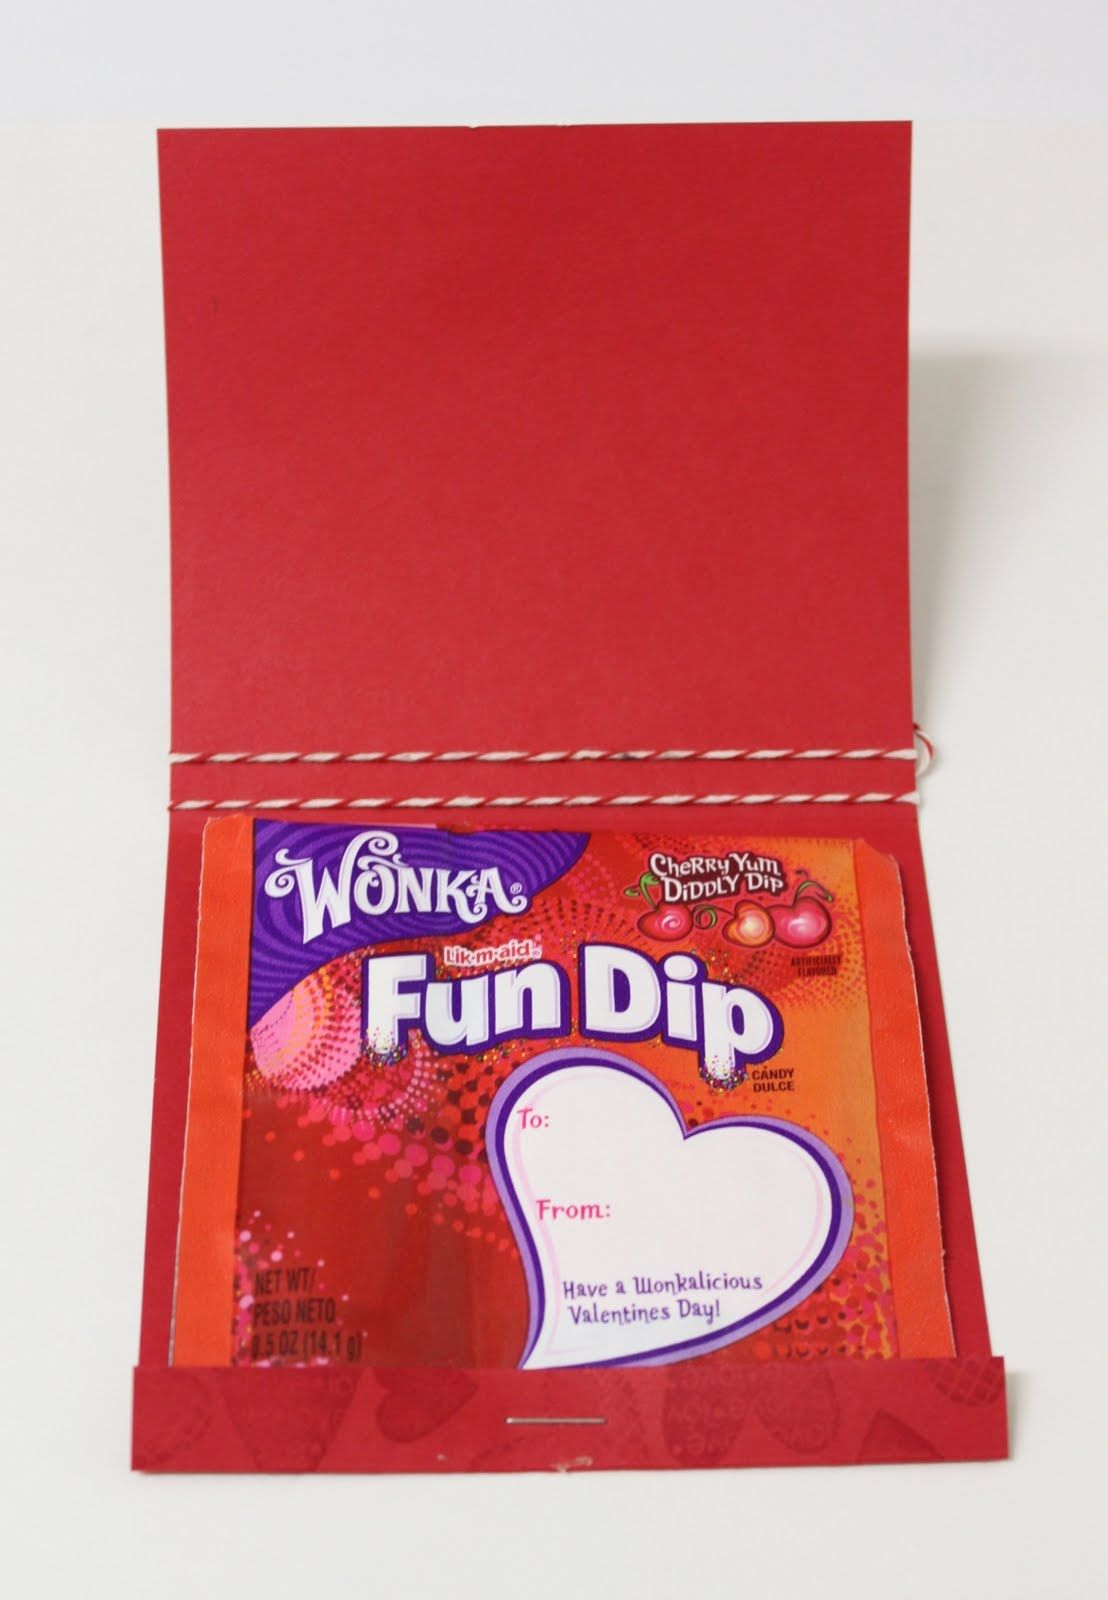 Valentines matchbook is cut at 8 1/2″ x 4 1/4″, and scored at the 1/2″ and 4 1/2″ mark.